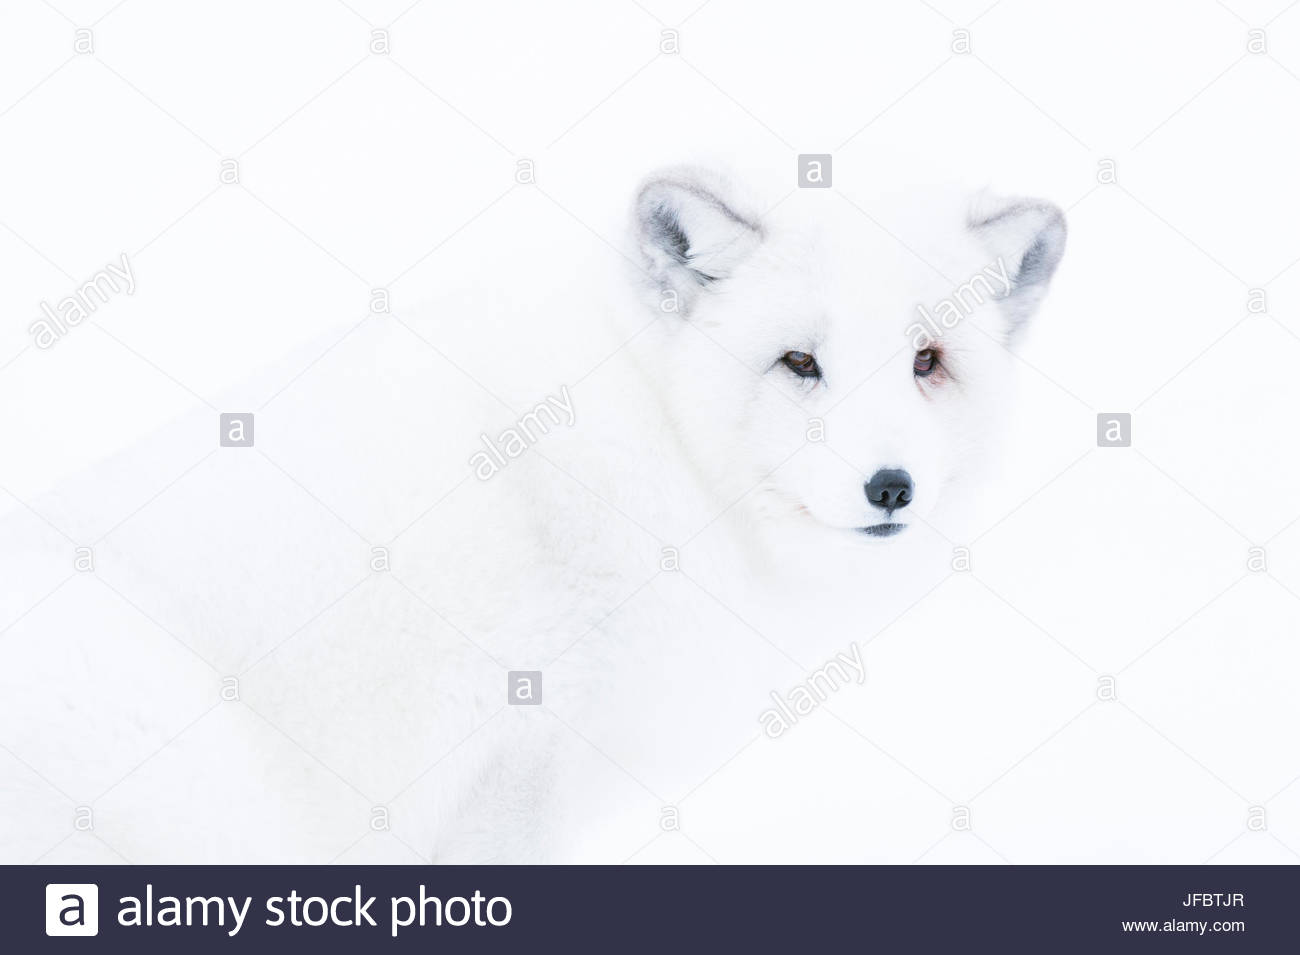 Close up portrait of an arctic fox, Vulpes lagopus, in the snow. - Stock Image